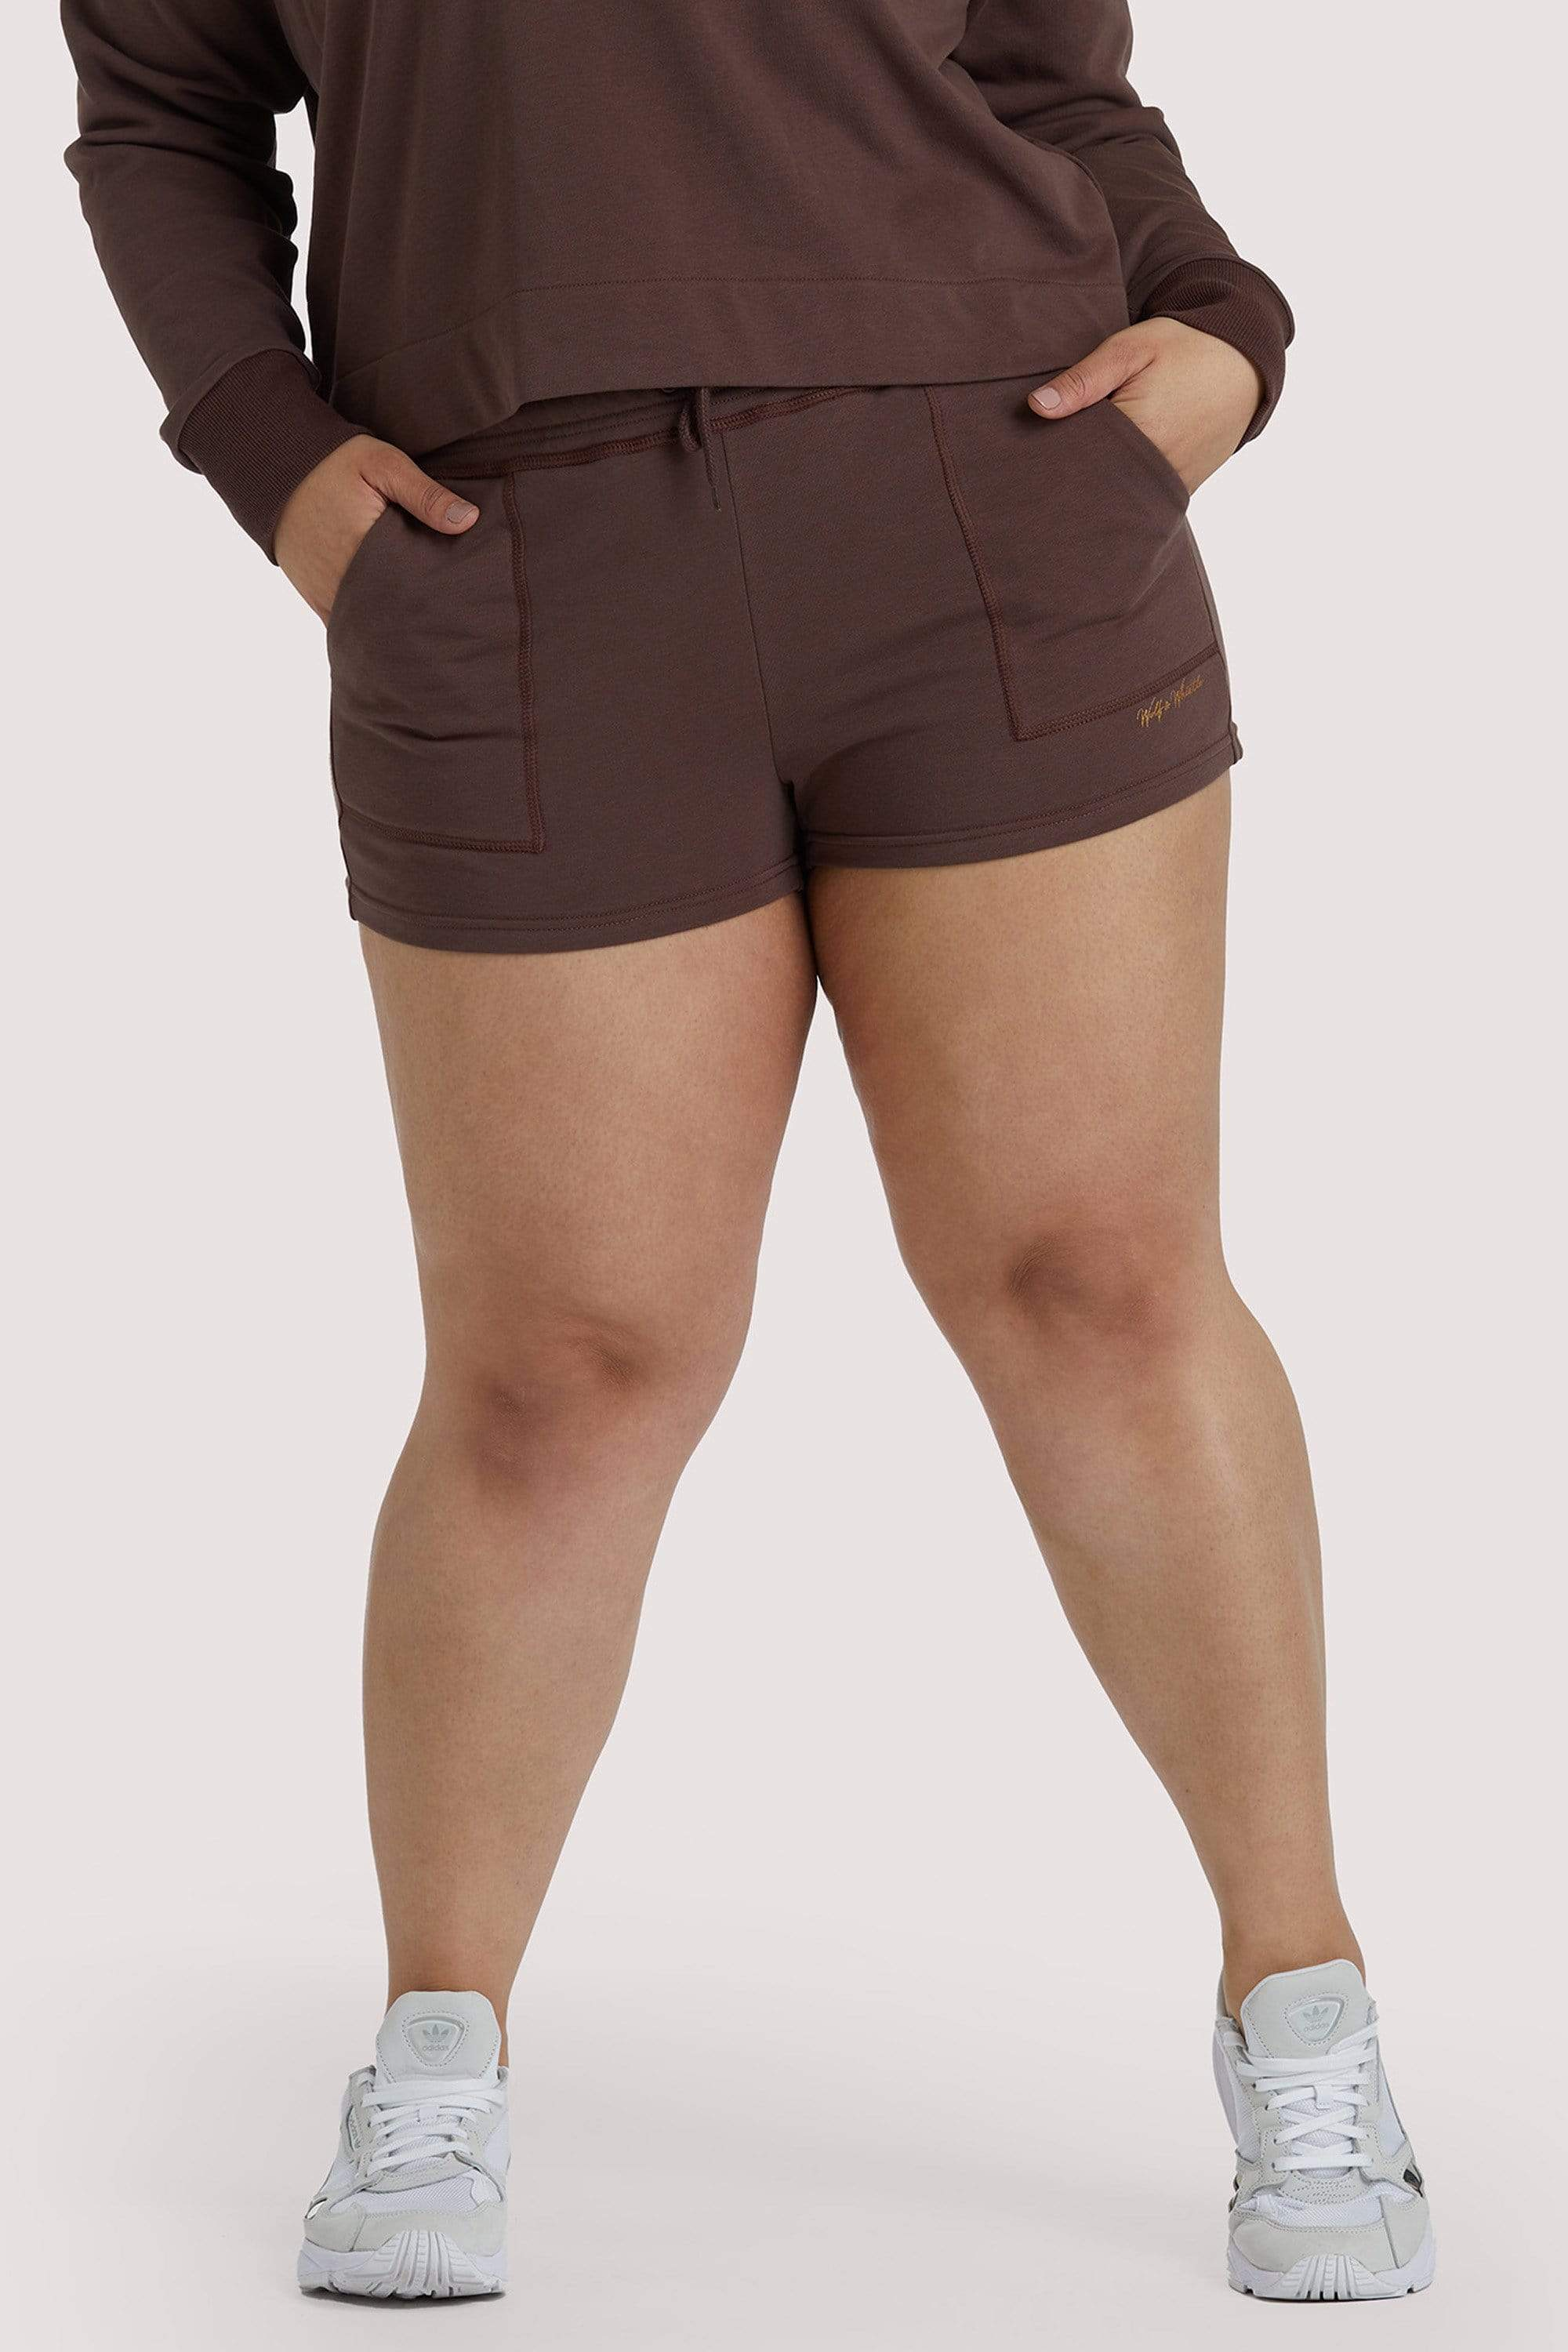 Wolf & Whistle Brown Tie Waist Curve Shorts UK18 / US14